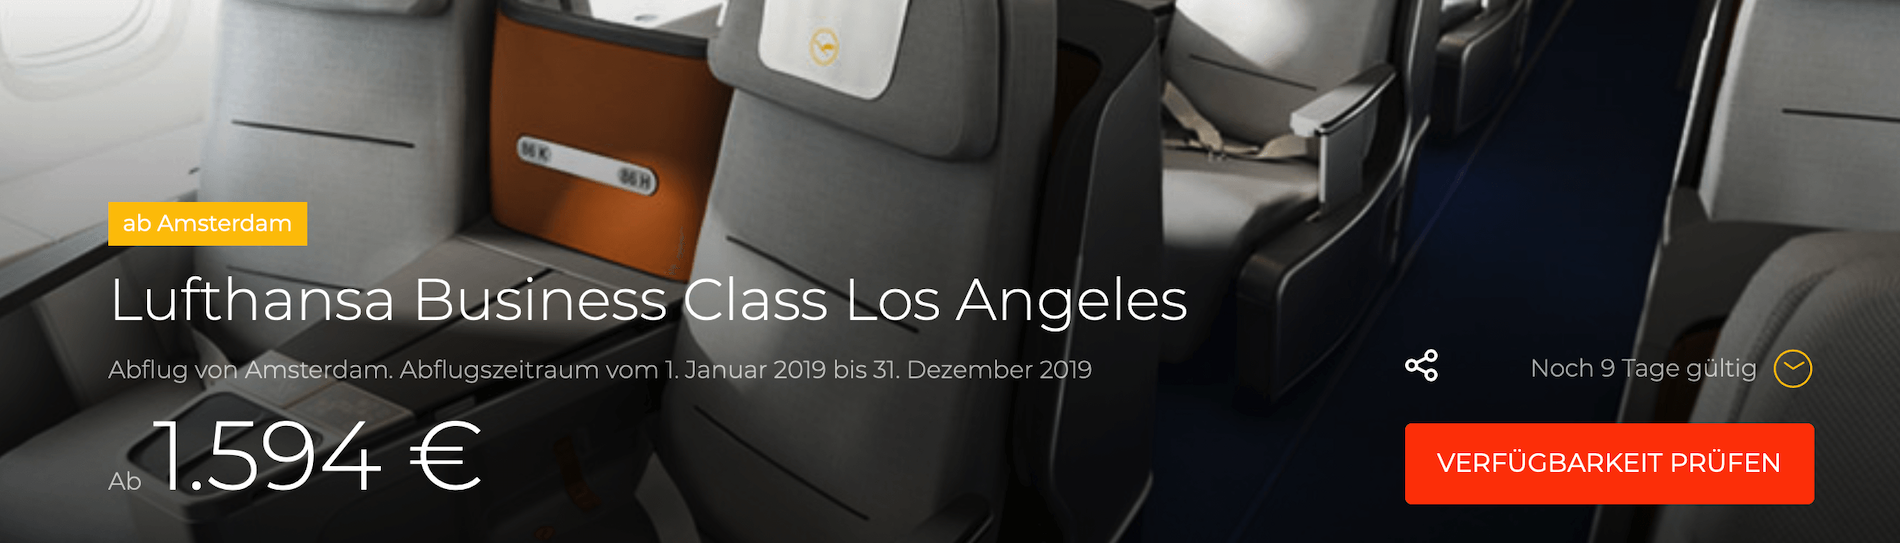 Lufthansa Business Class nach Los Angeles 1594€